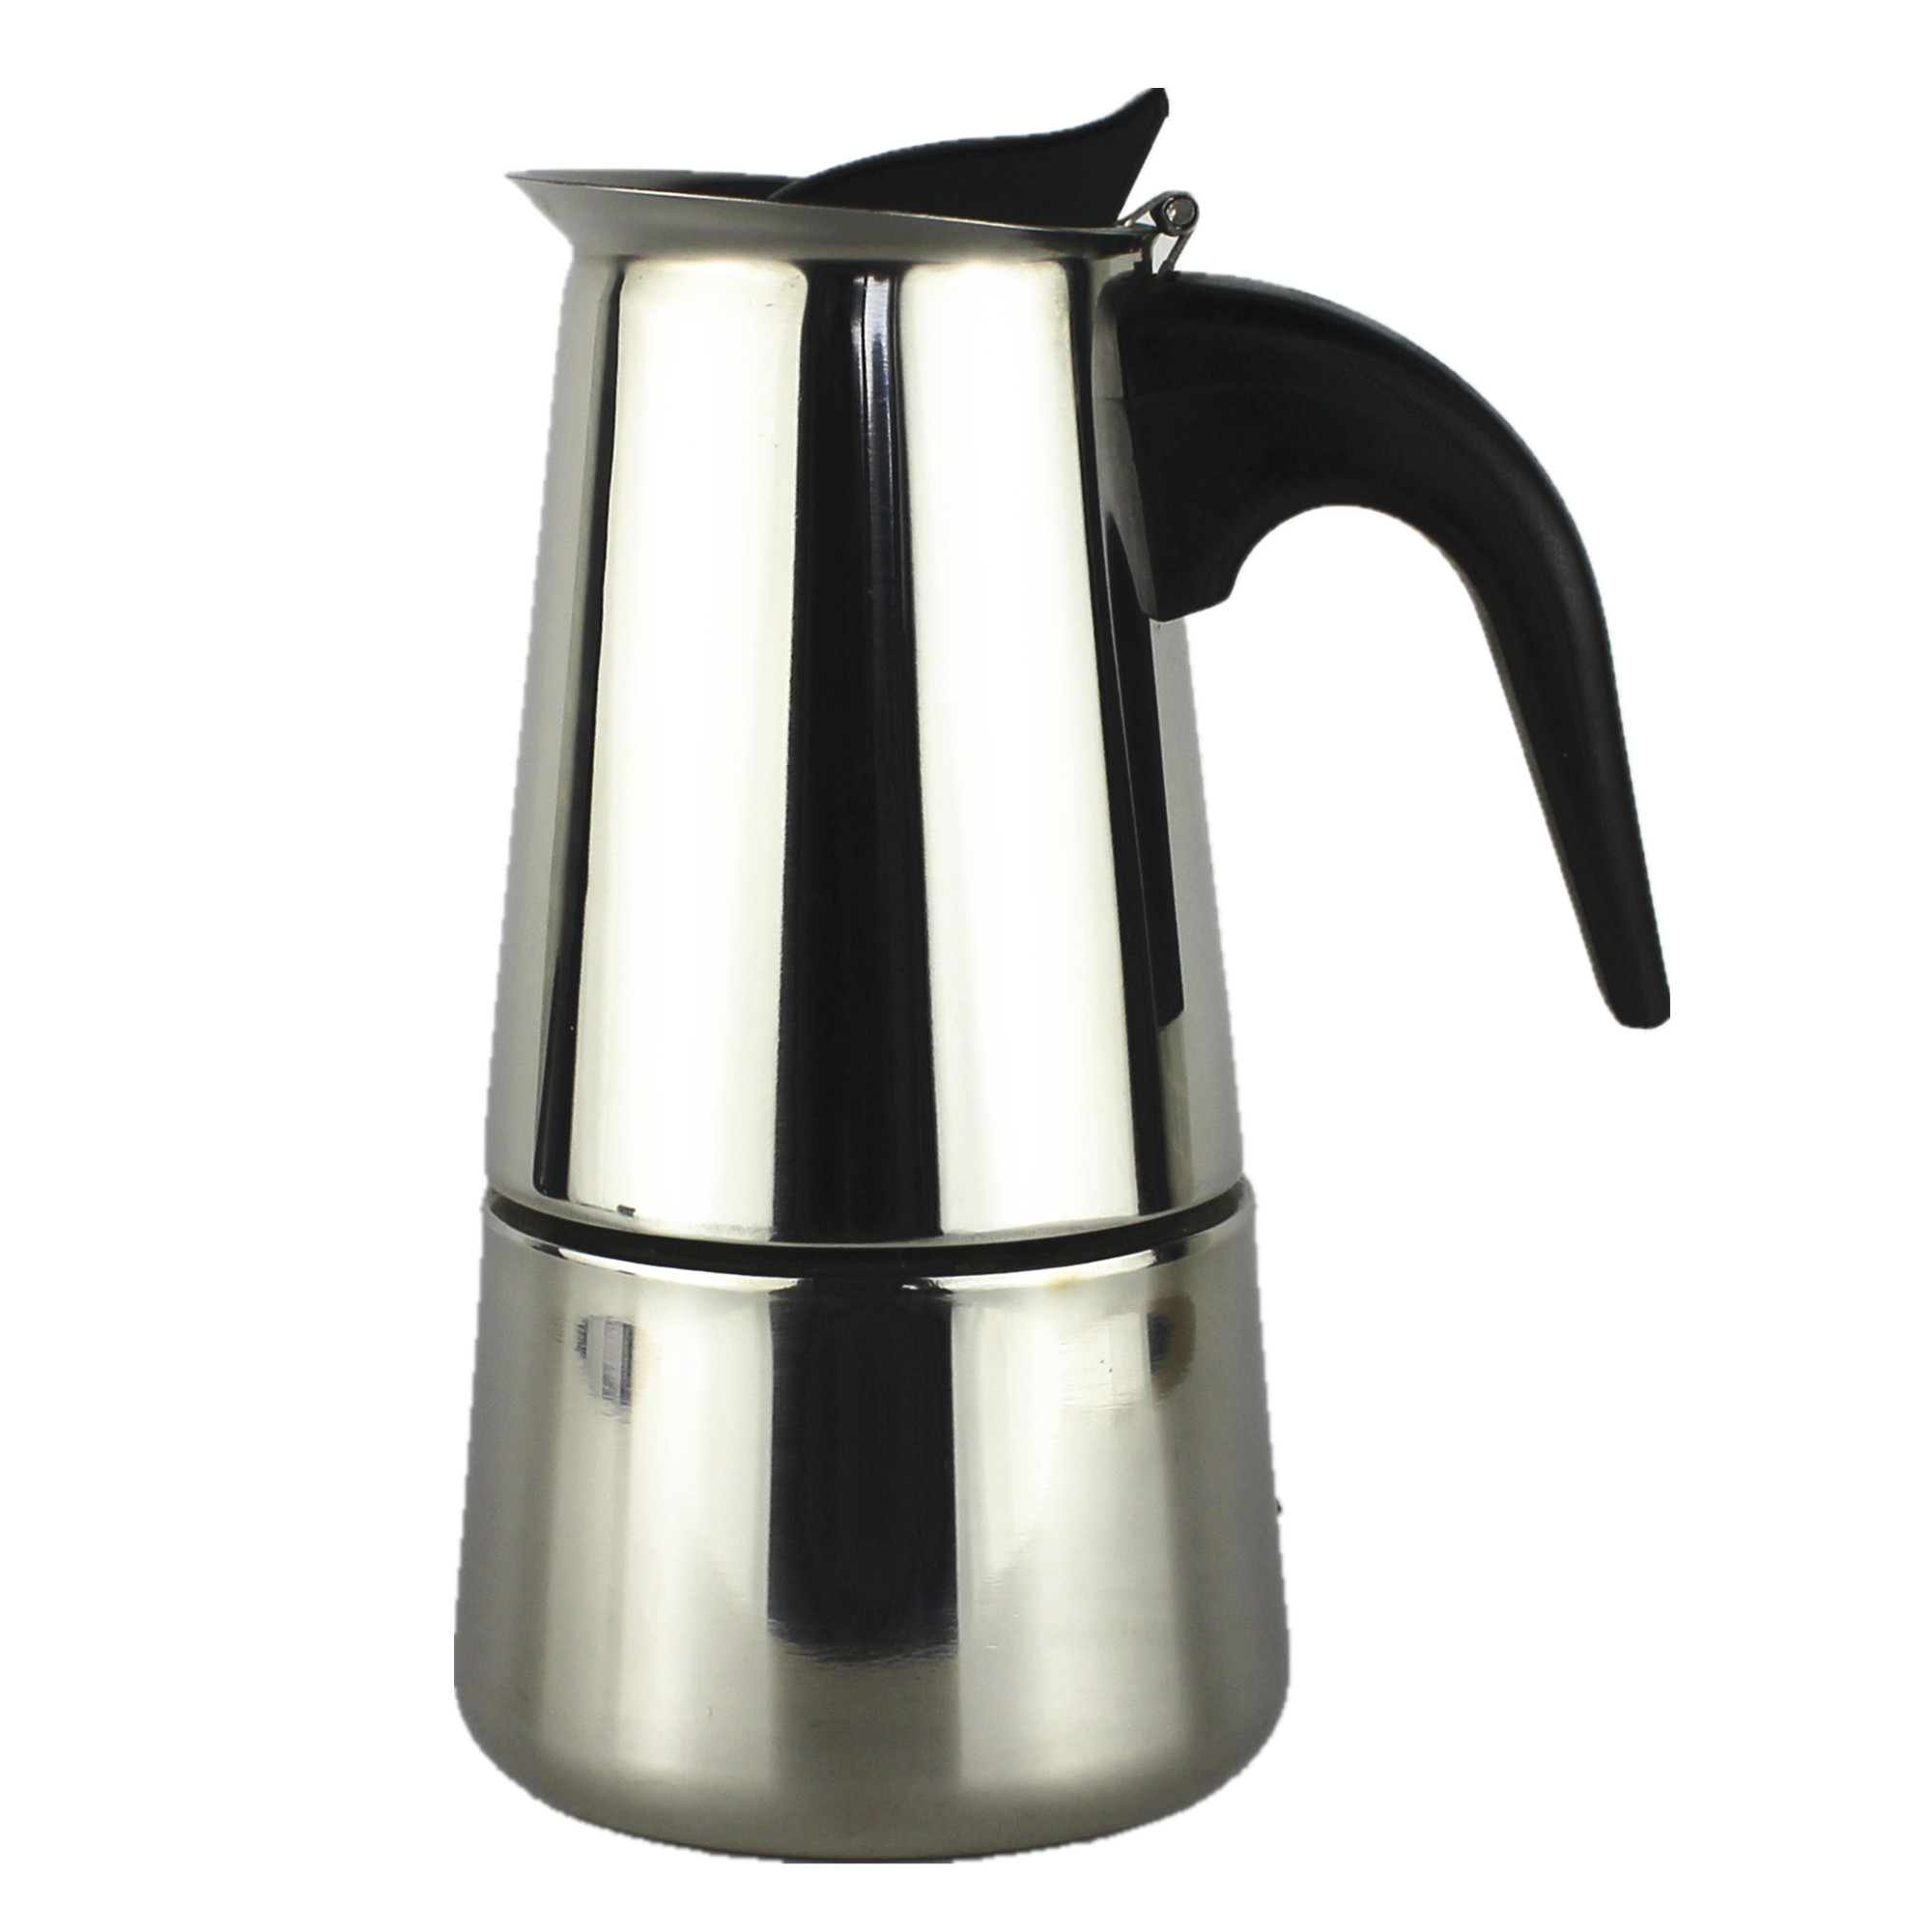 Kitchen Sense Stainless Steel Coffee Maker 6 Cup